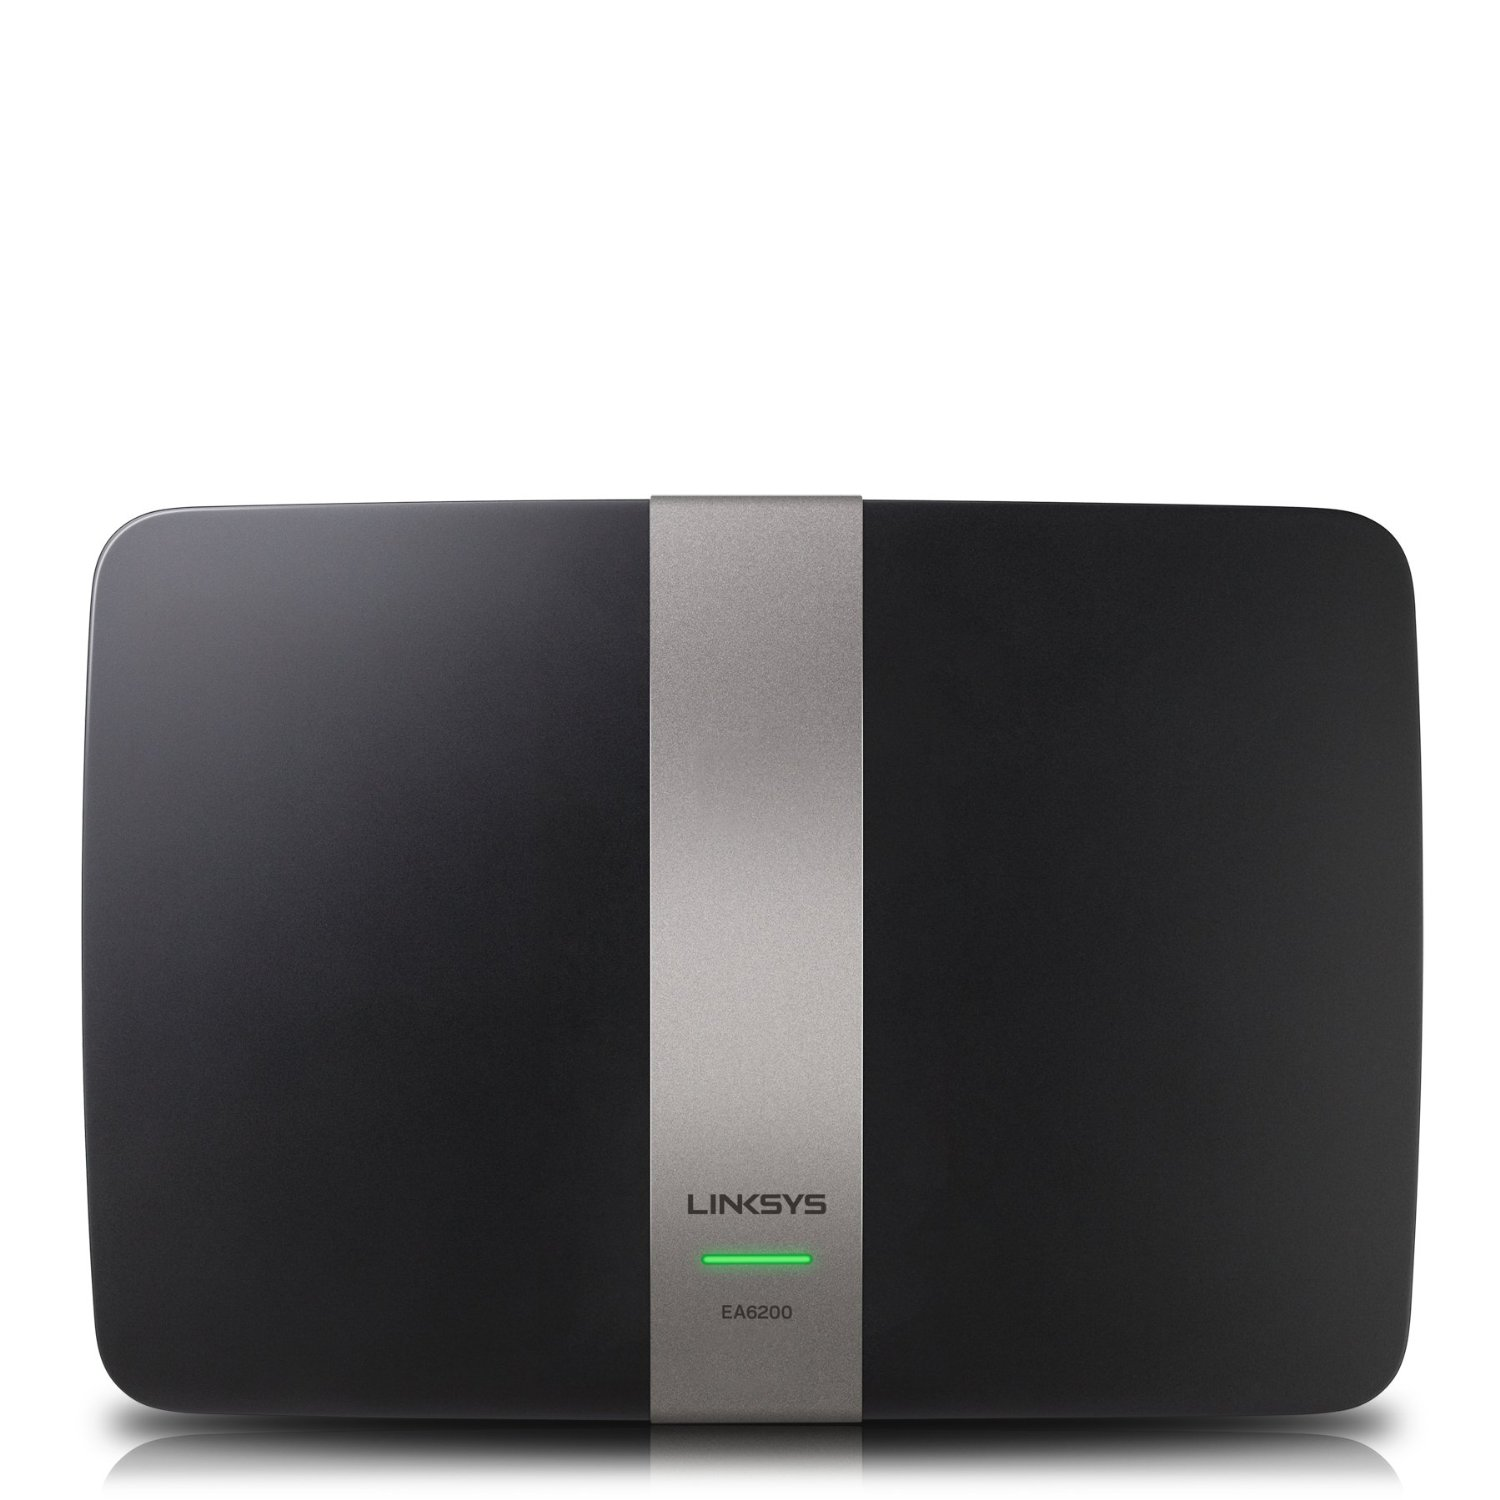 Linksys AC 900 Smart Wi-Fi Wireless Router